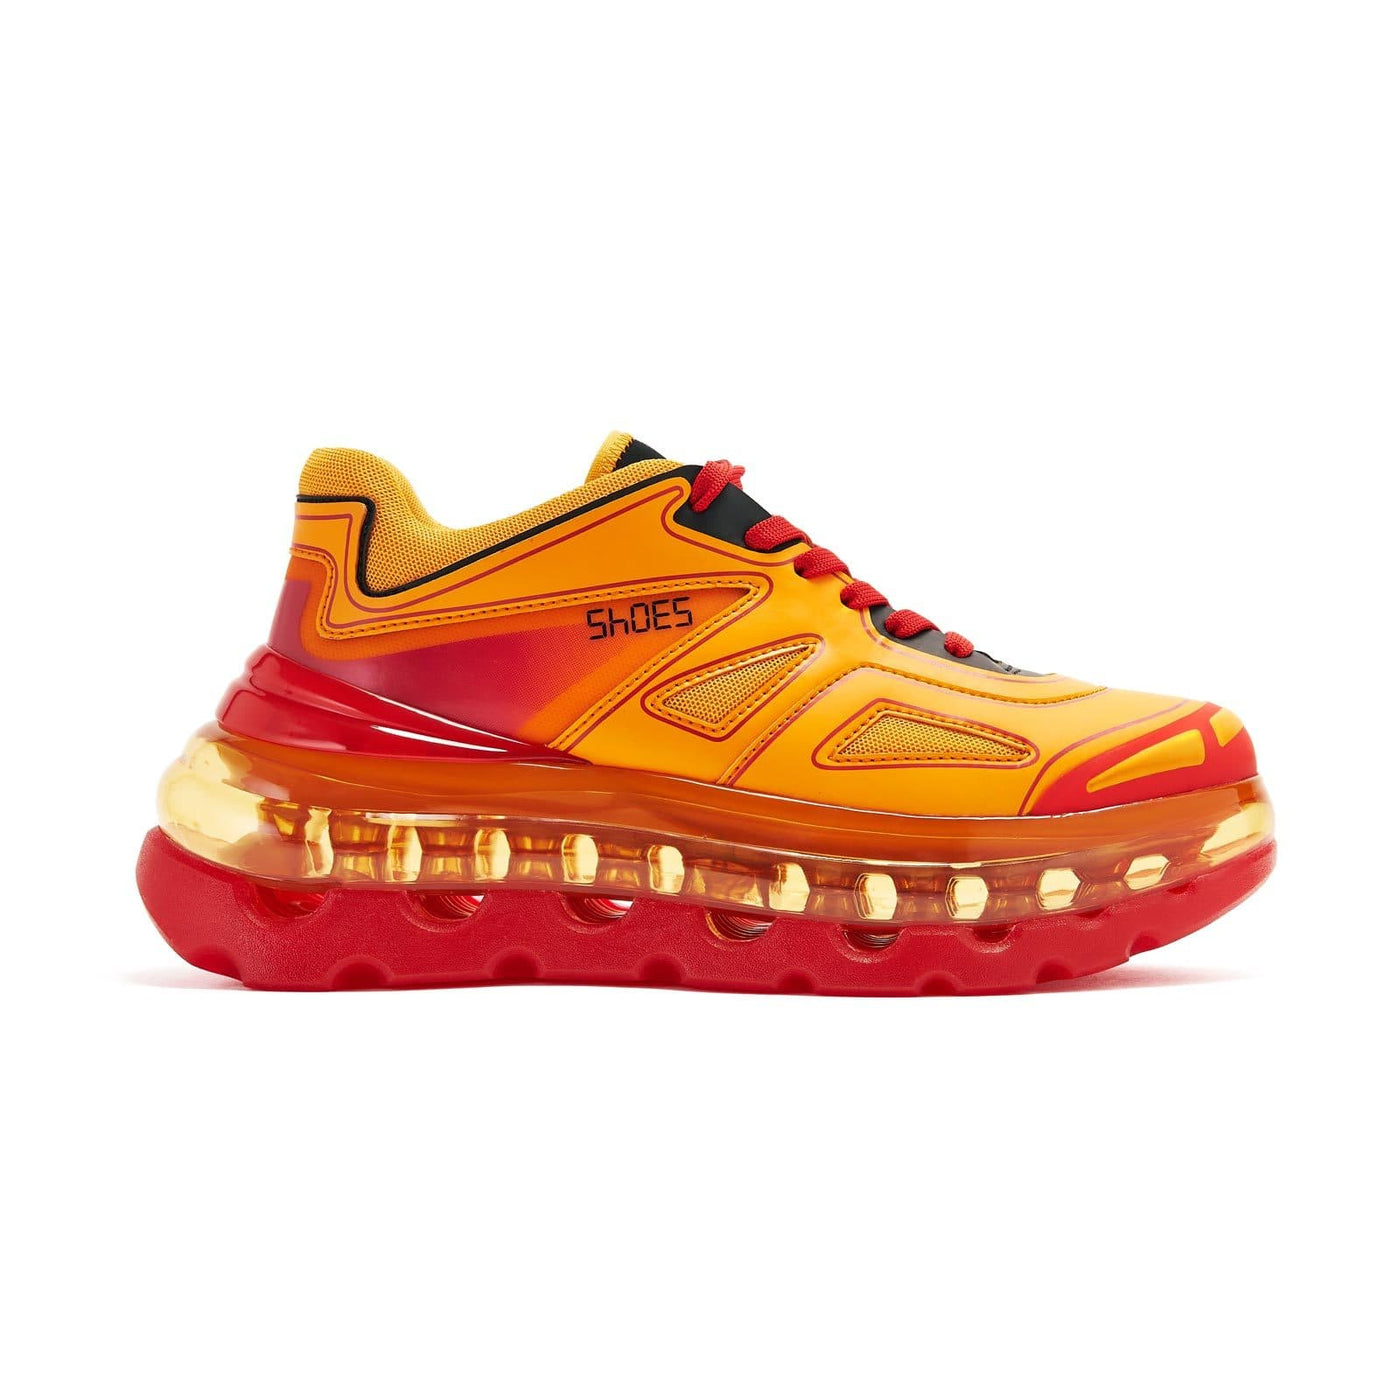 SHOES 53045 - Bump'Air Flame